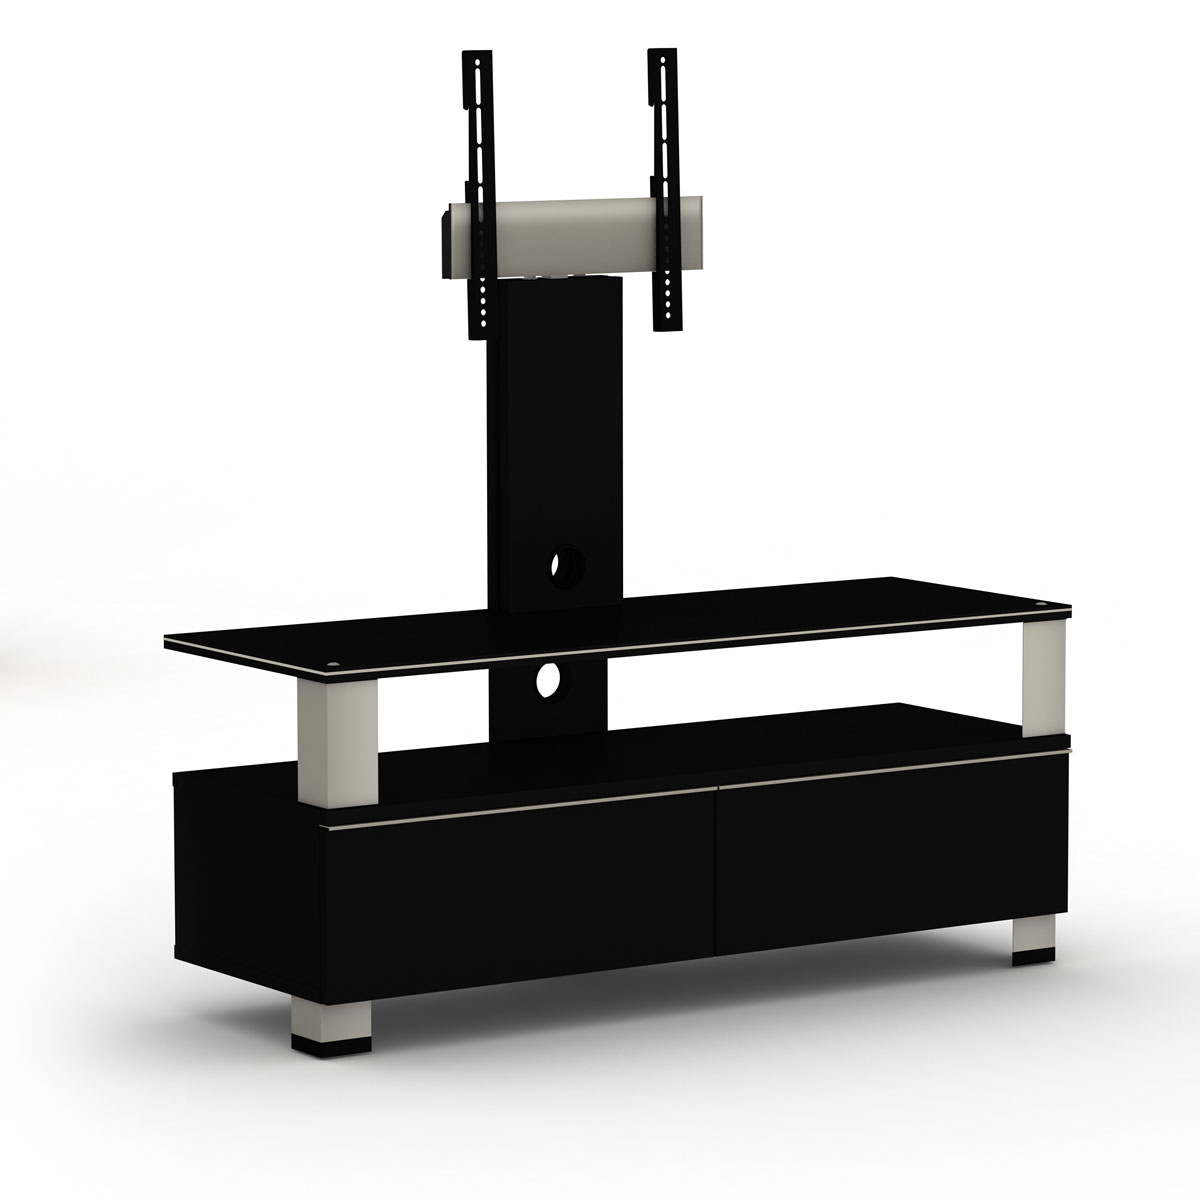 elmob tura tu 120 02f noir meuble tv elmob sur. Black Bedroom Furniture Sets. Home Design Ideas